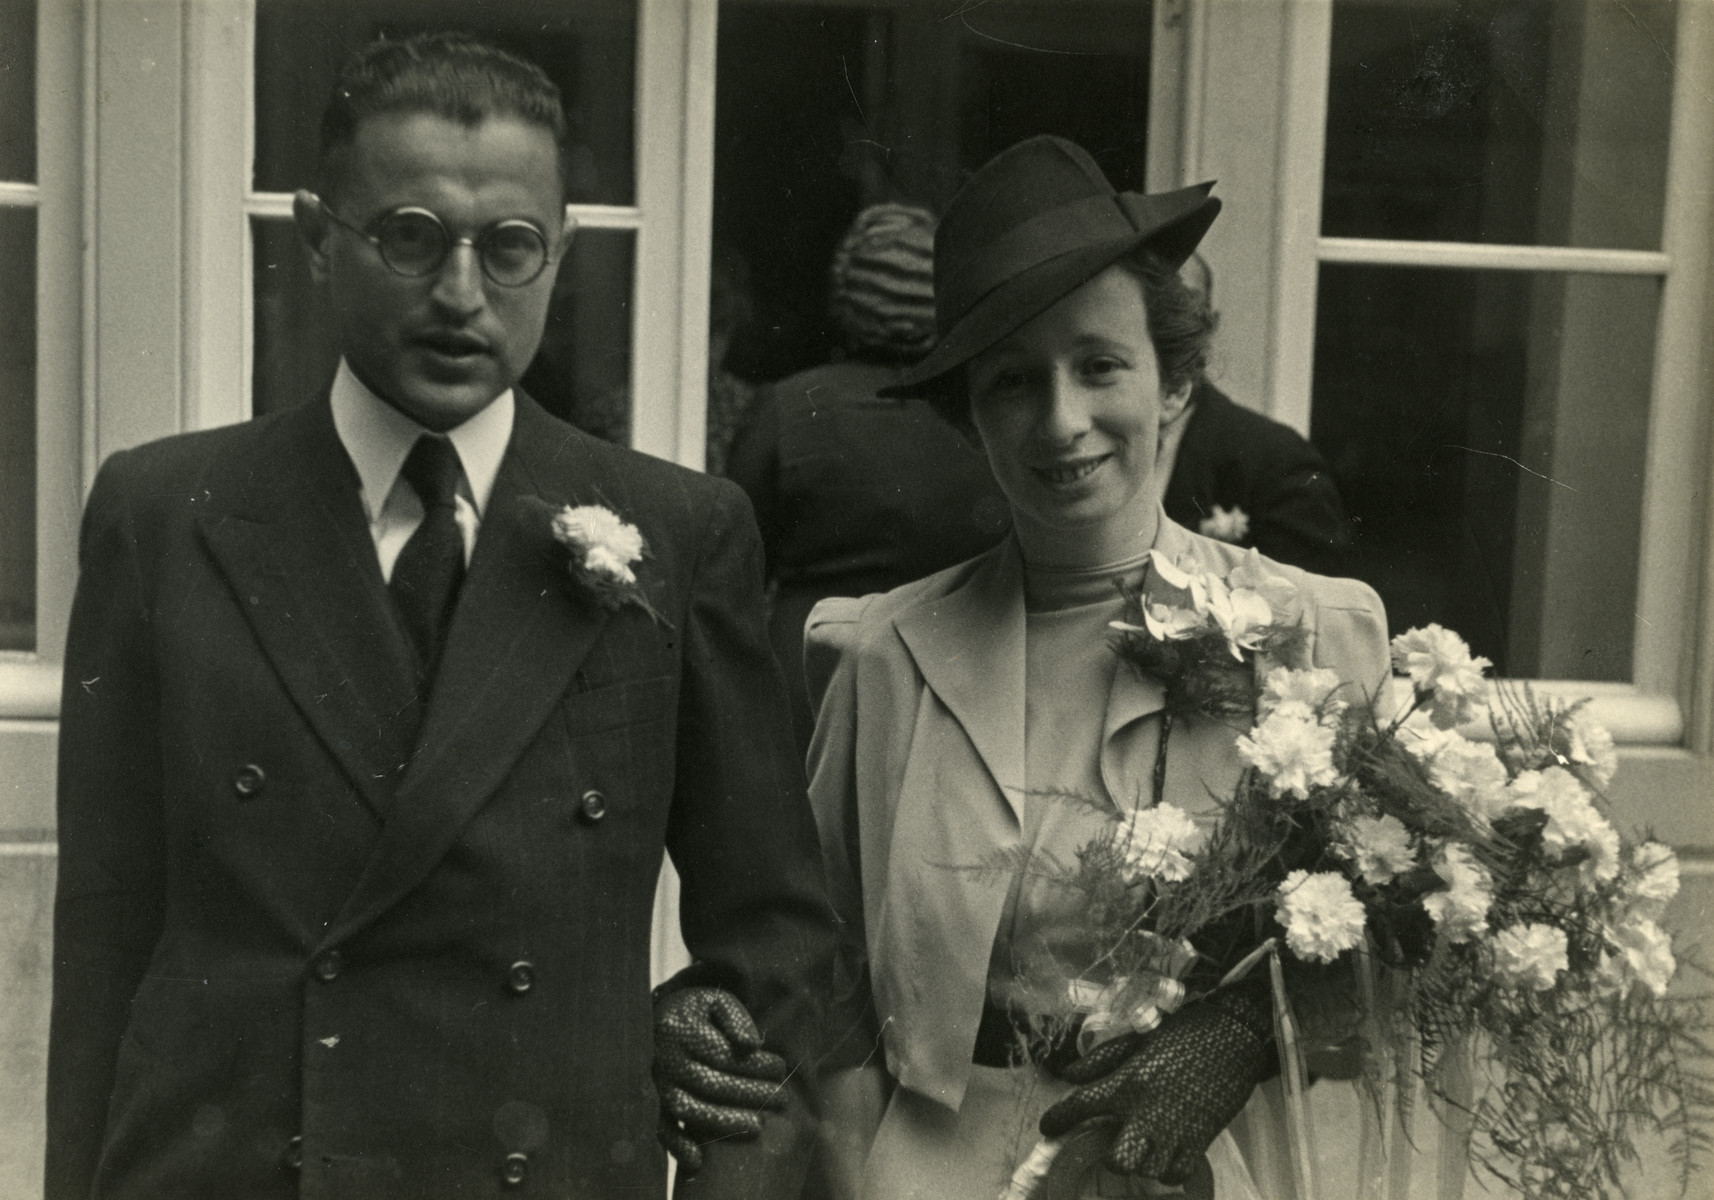 Wedding portrait of Harry van Geuns and Beppy (Elisabeth) van den Bergh.